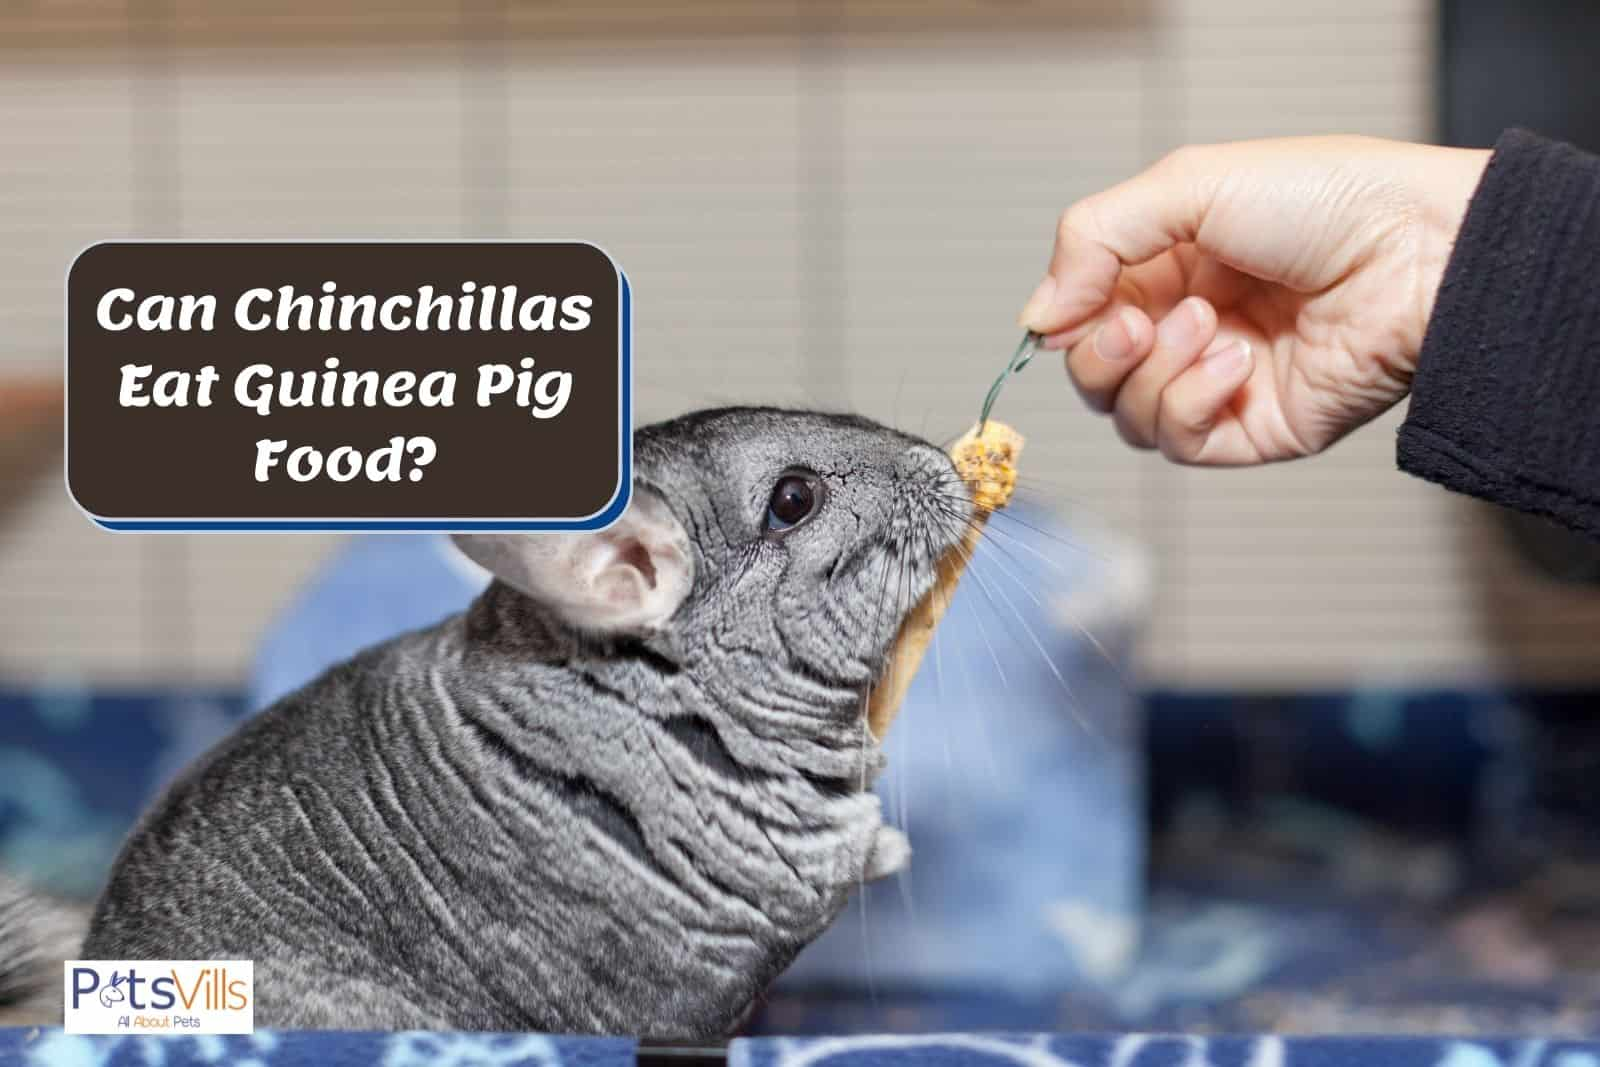 chinchilla eating guinea pig food but Can Chinchillas Eat Guinea Pig Food safely?